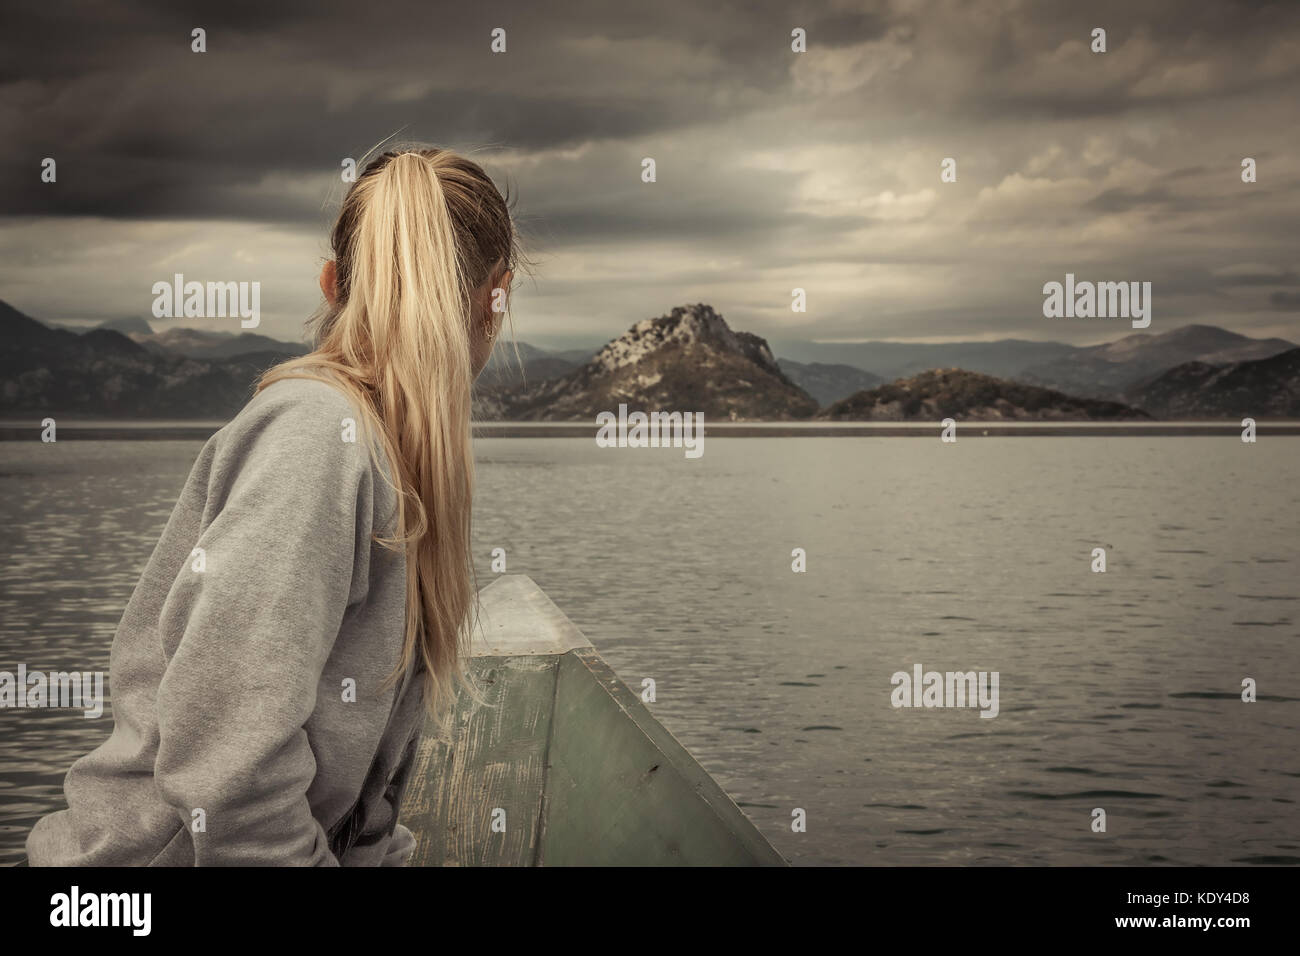 Woman traveler sailing on boat towards shore with with Mountains landscape on horizon in overcast day with dramatic Stock Photo